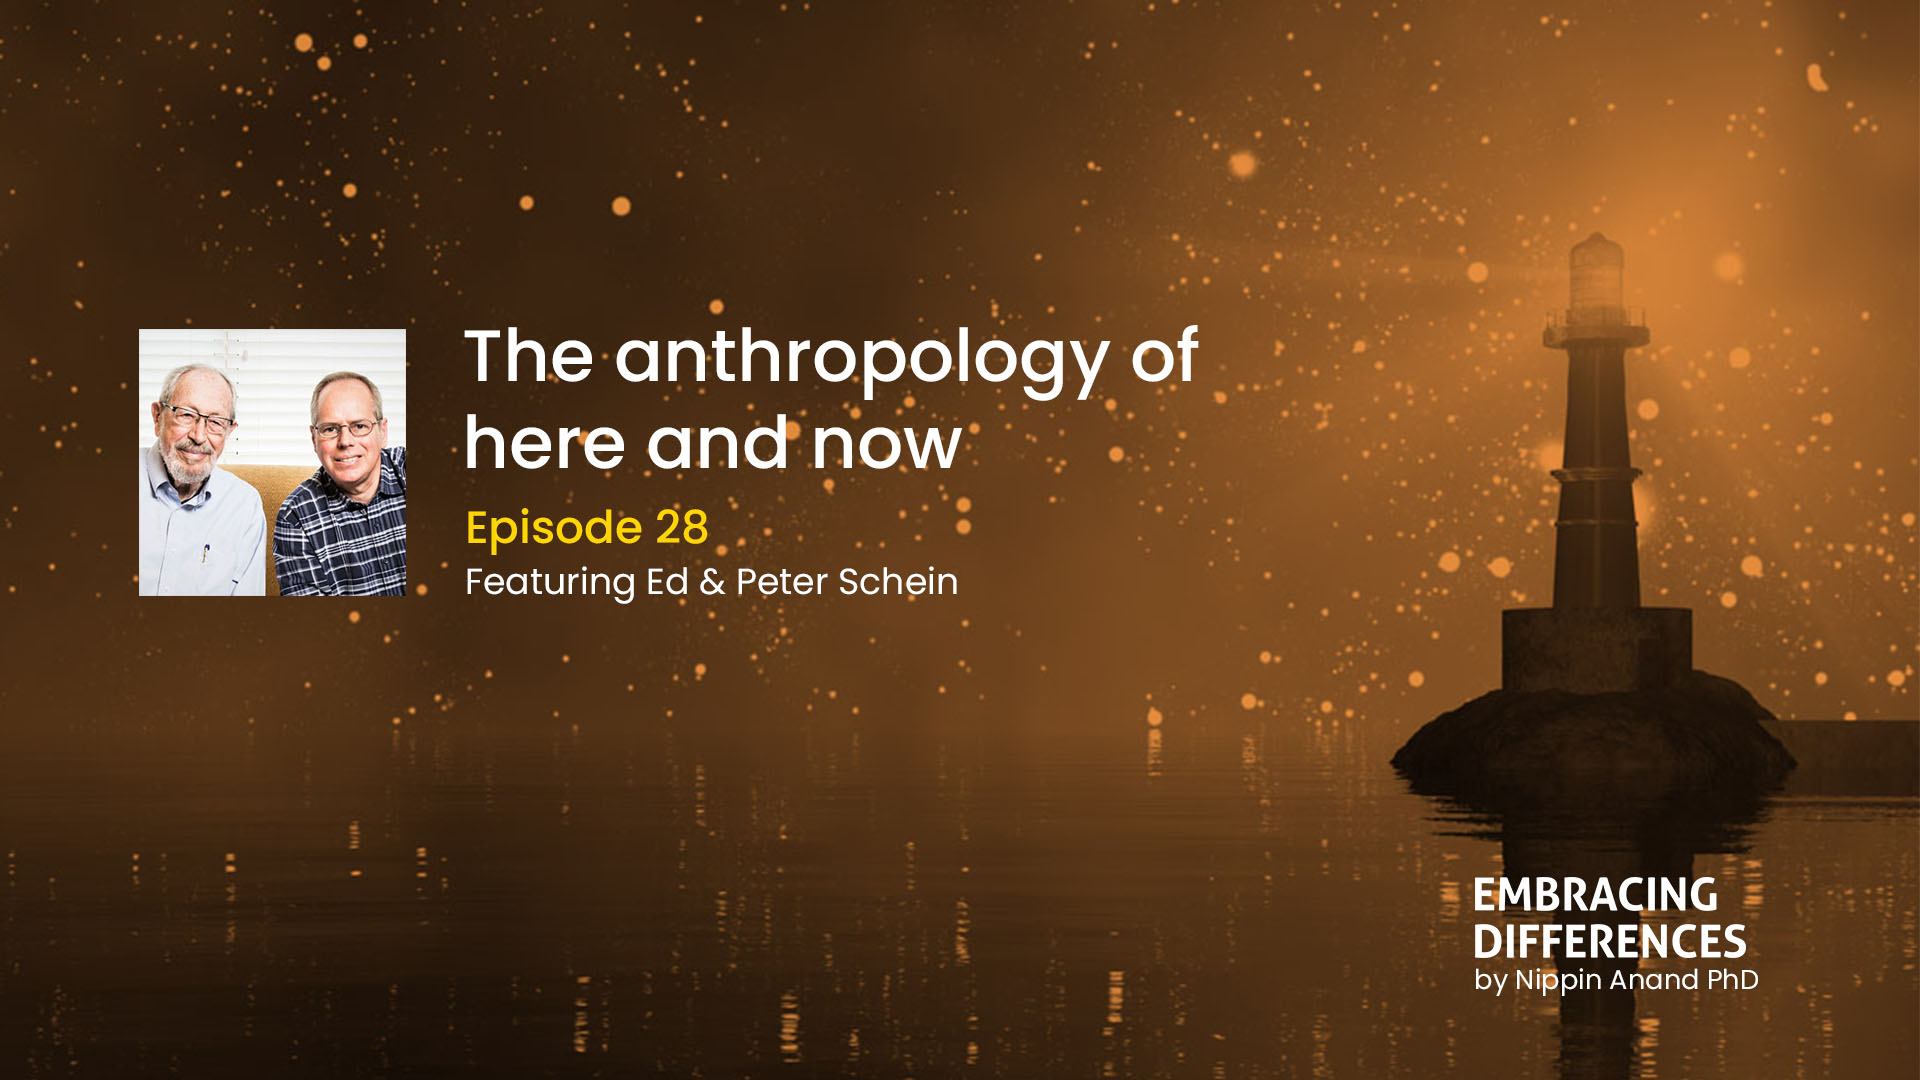 The anthropology of here and now: with Ed Schein and Peter Schein